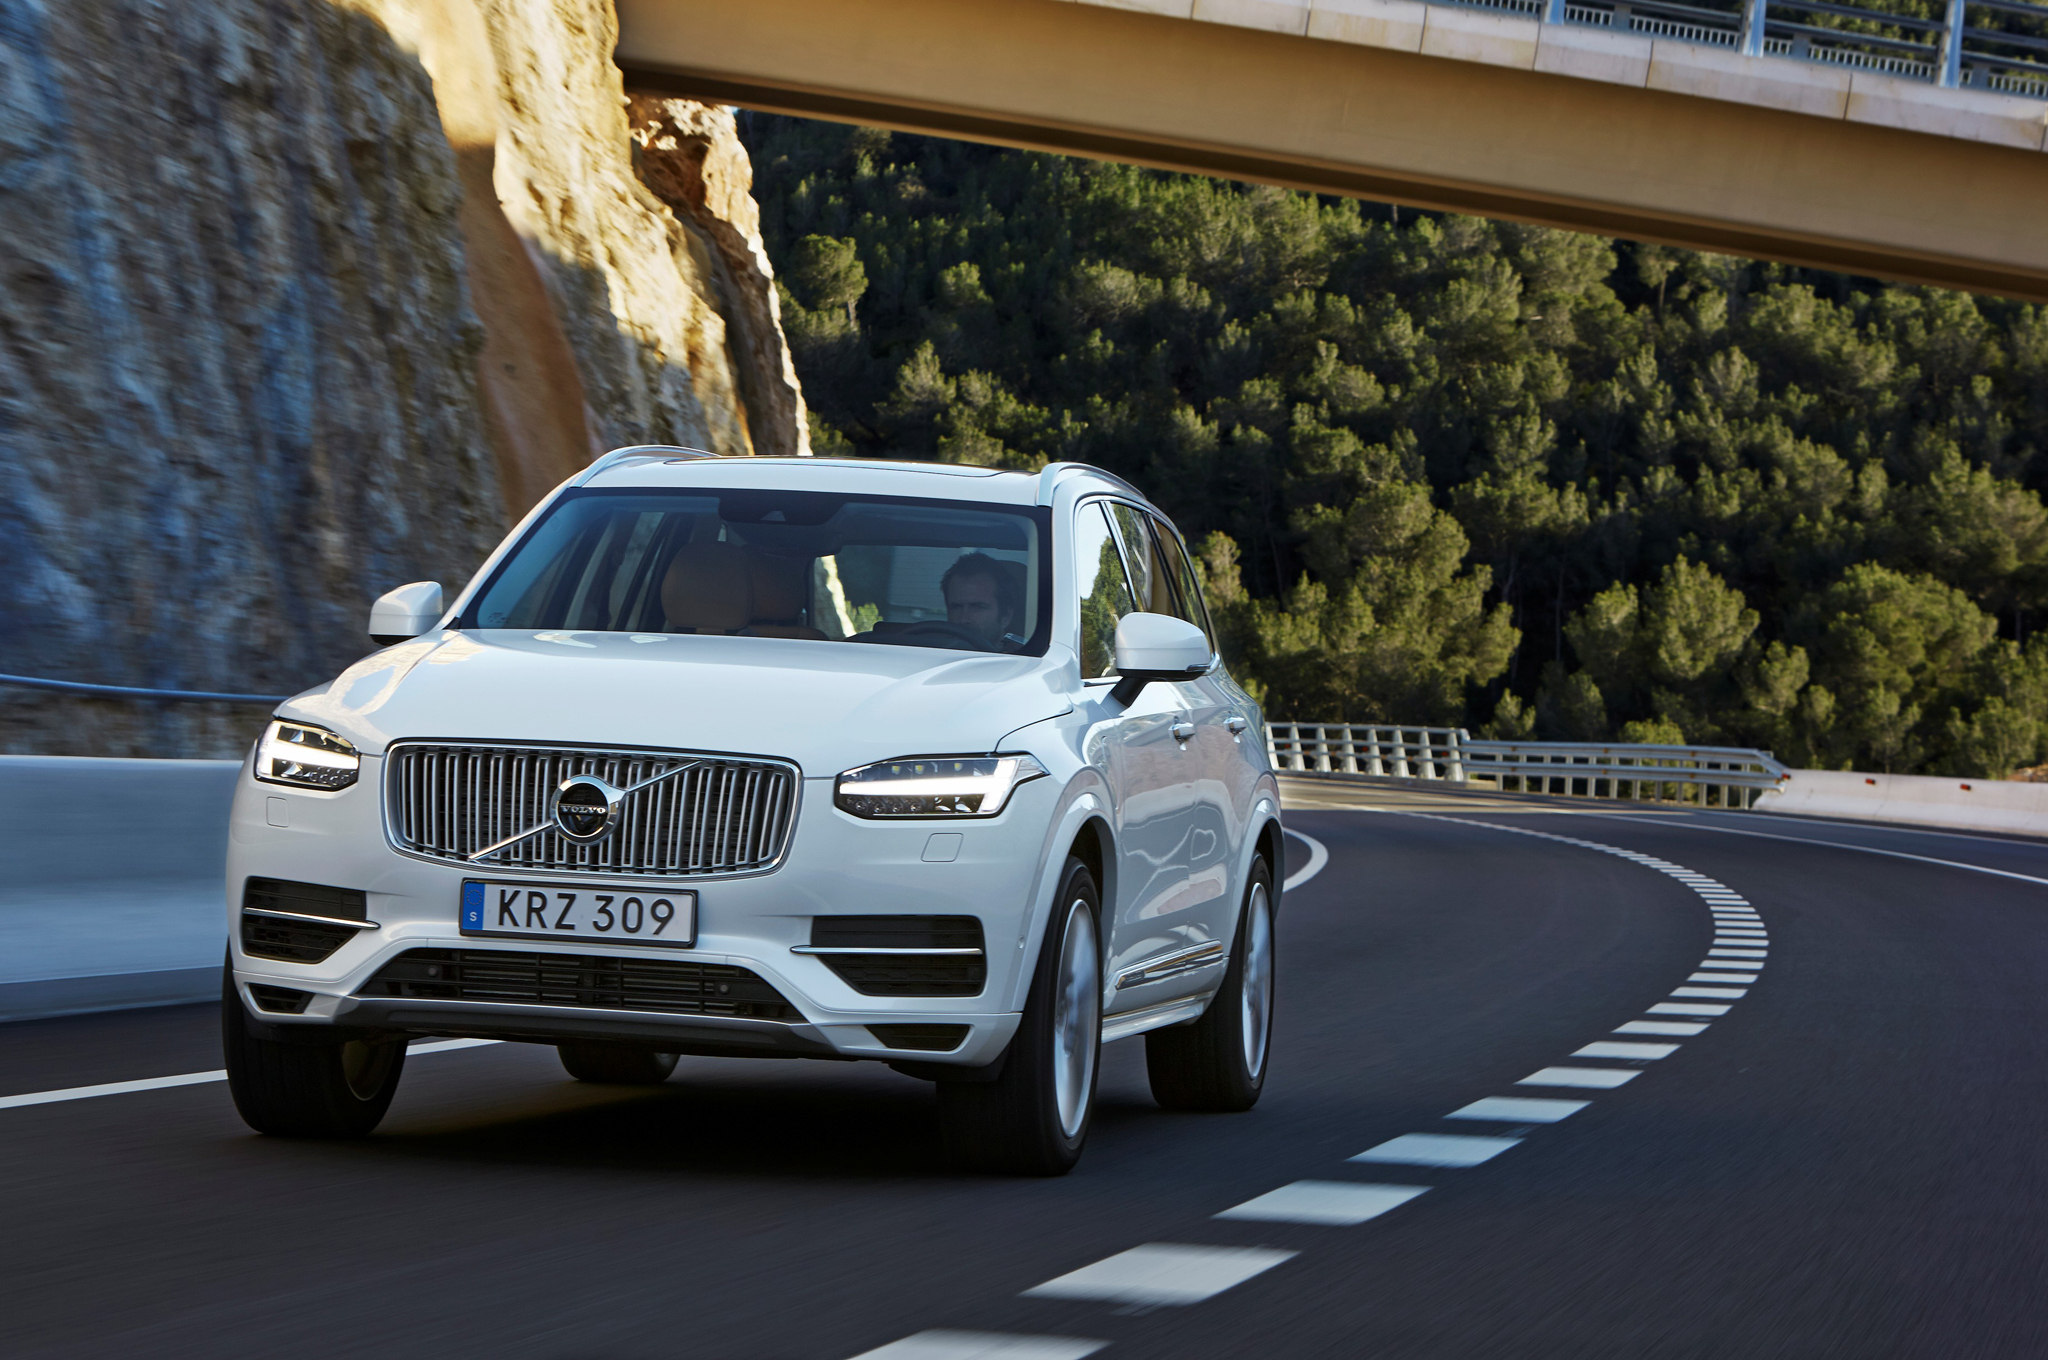 2016 Volvo Xc90 T8 Test Drive Front View (View 10 of 18)